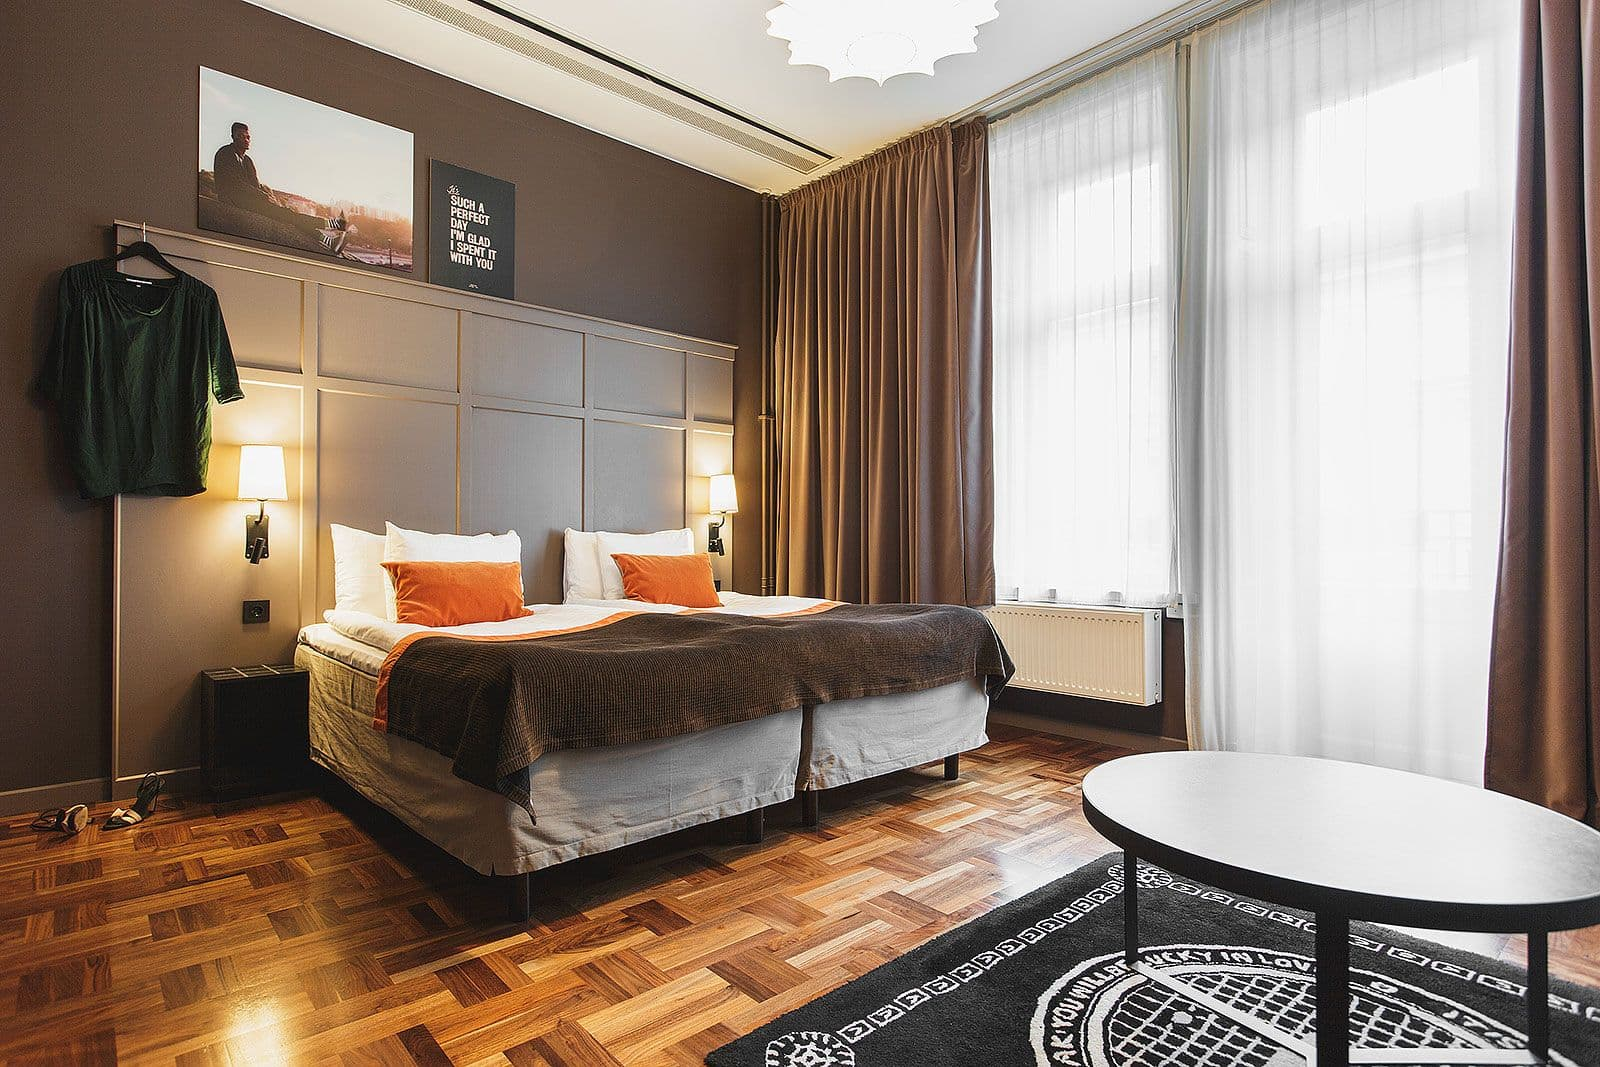 Hotell grand central by scandic hotell norrmalm city for Scandic design